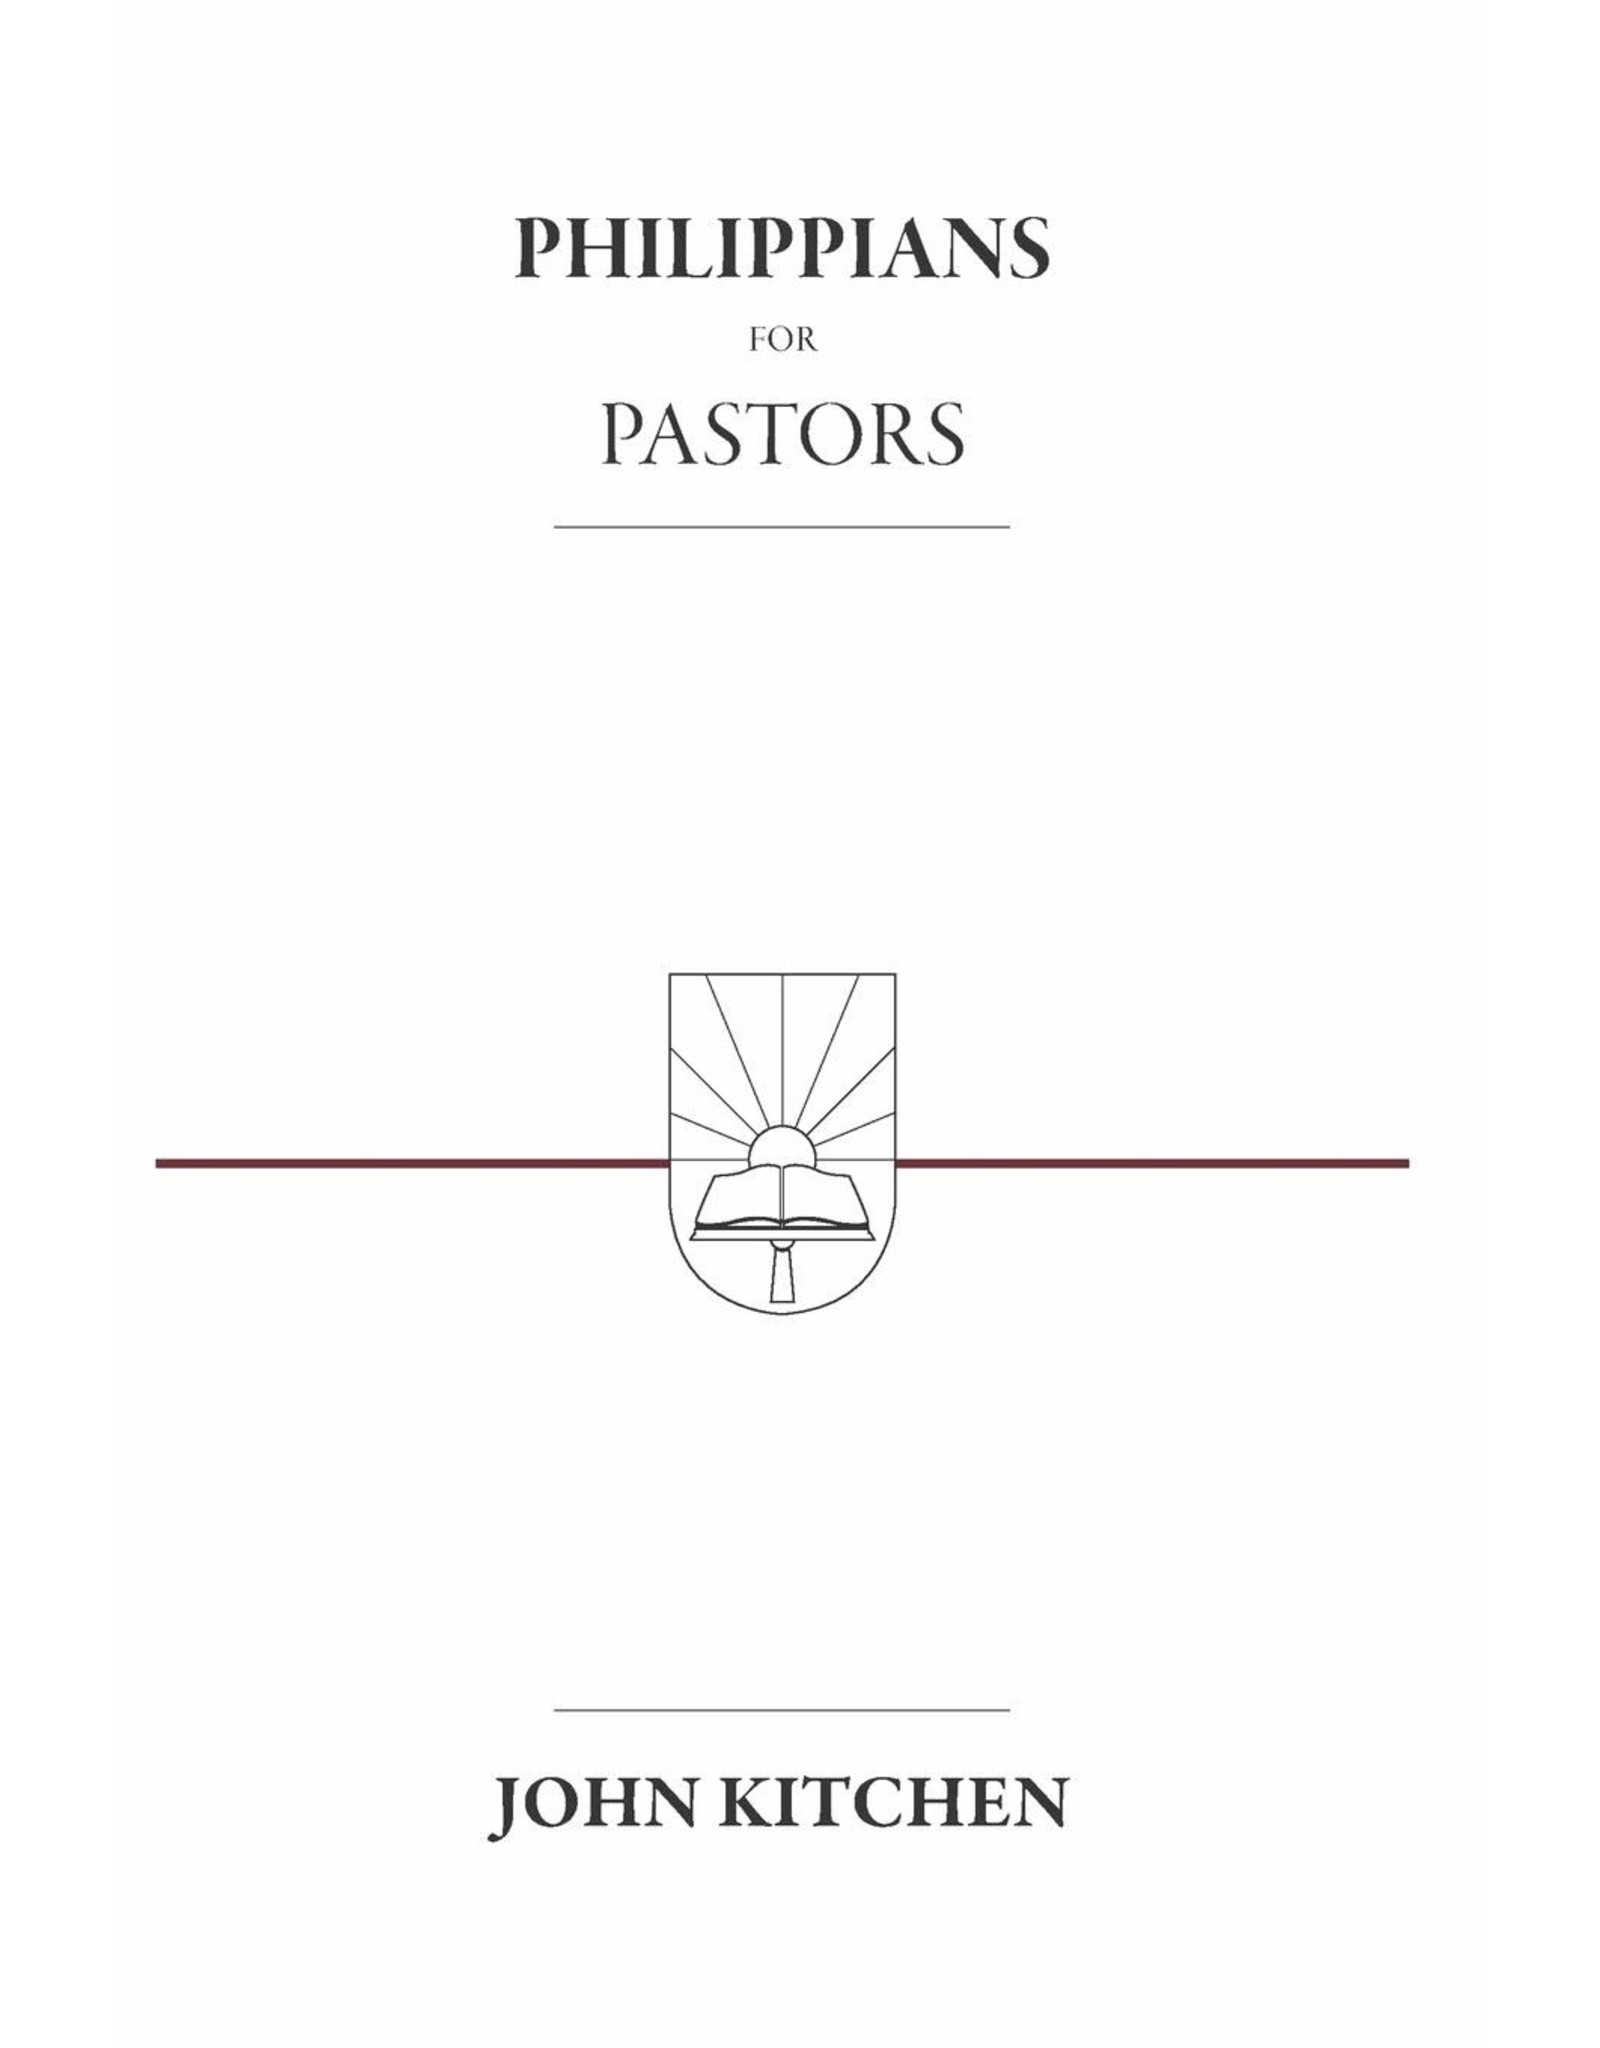 Kress Philippians for Pastors